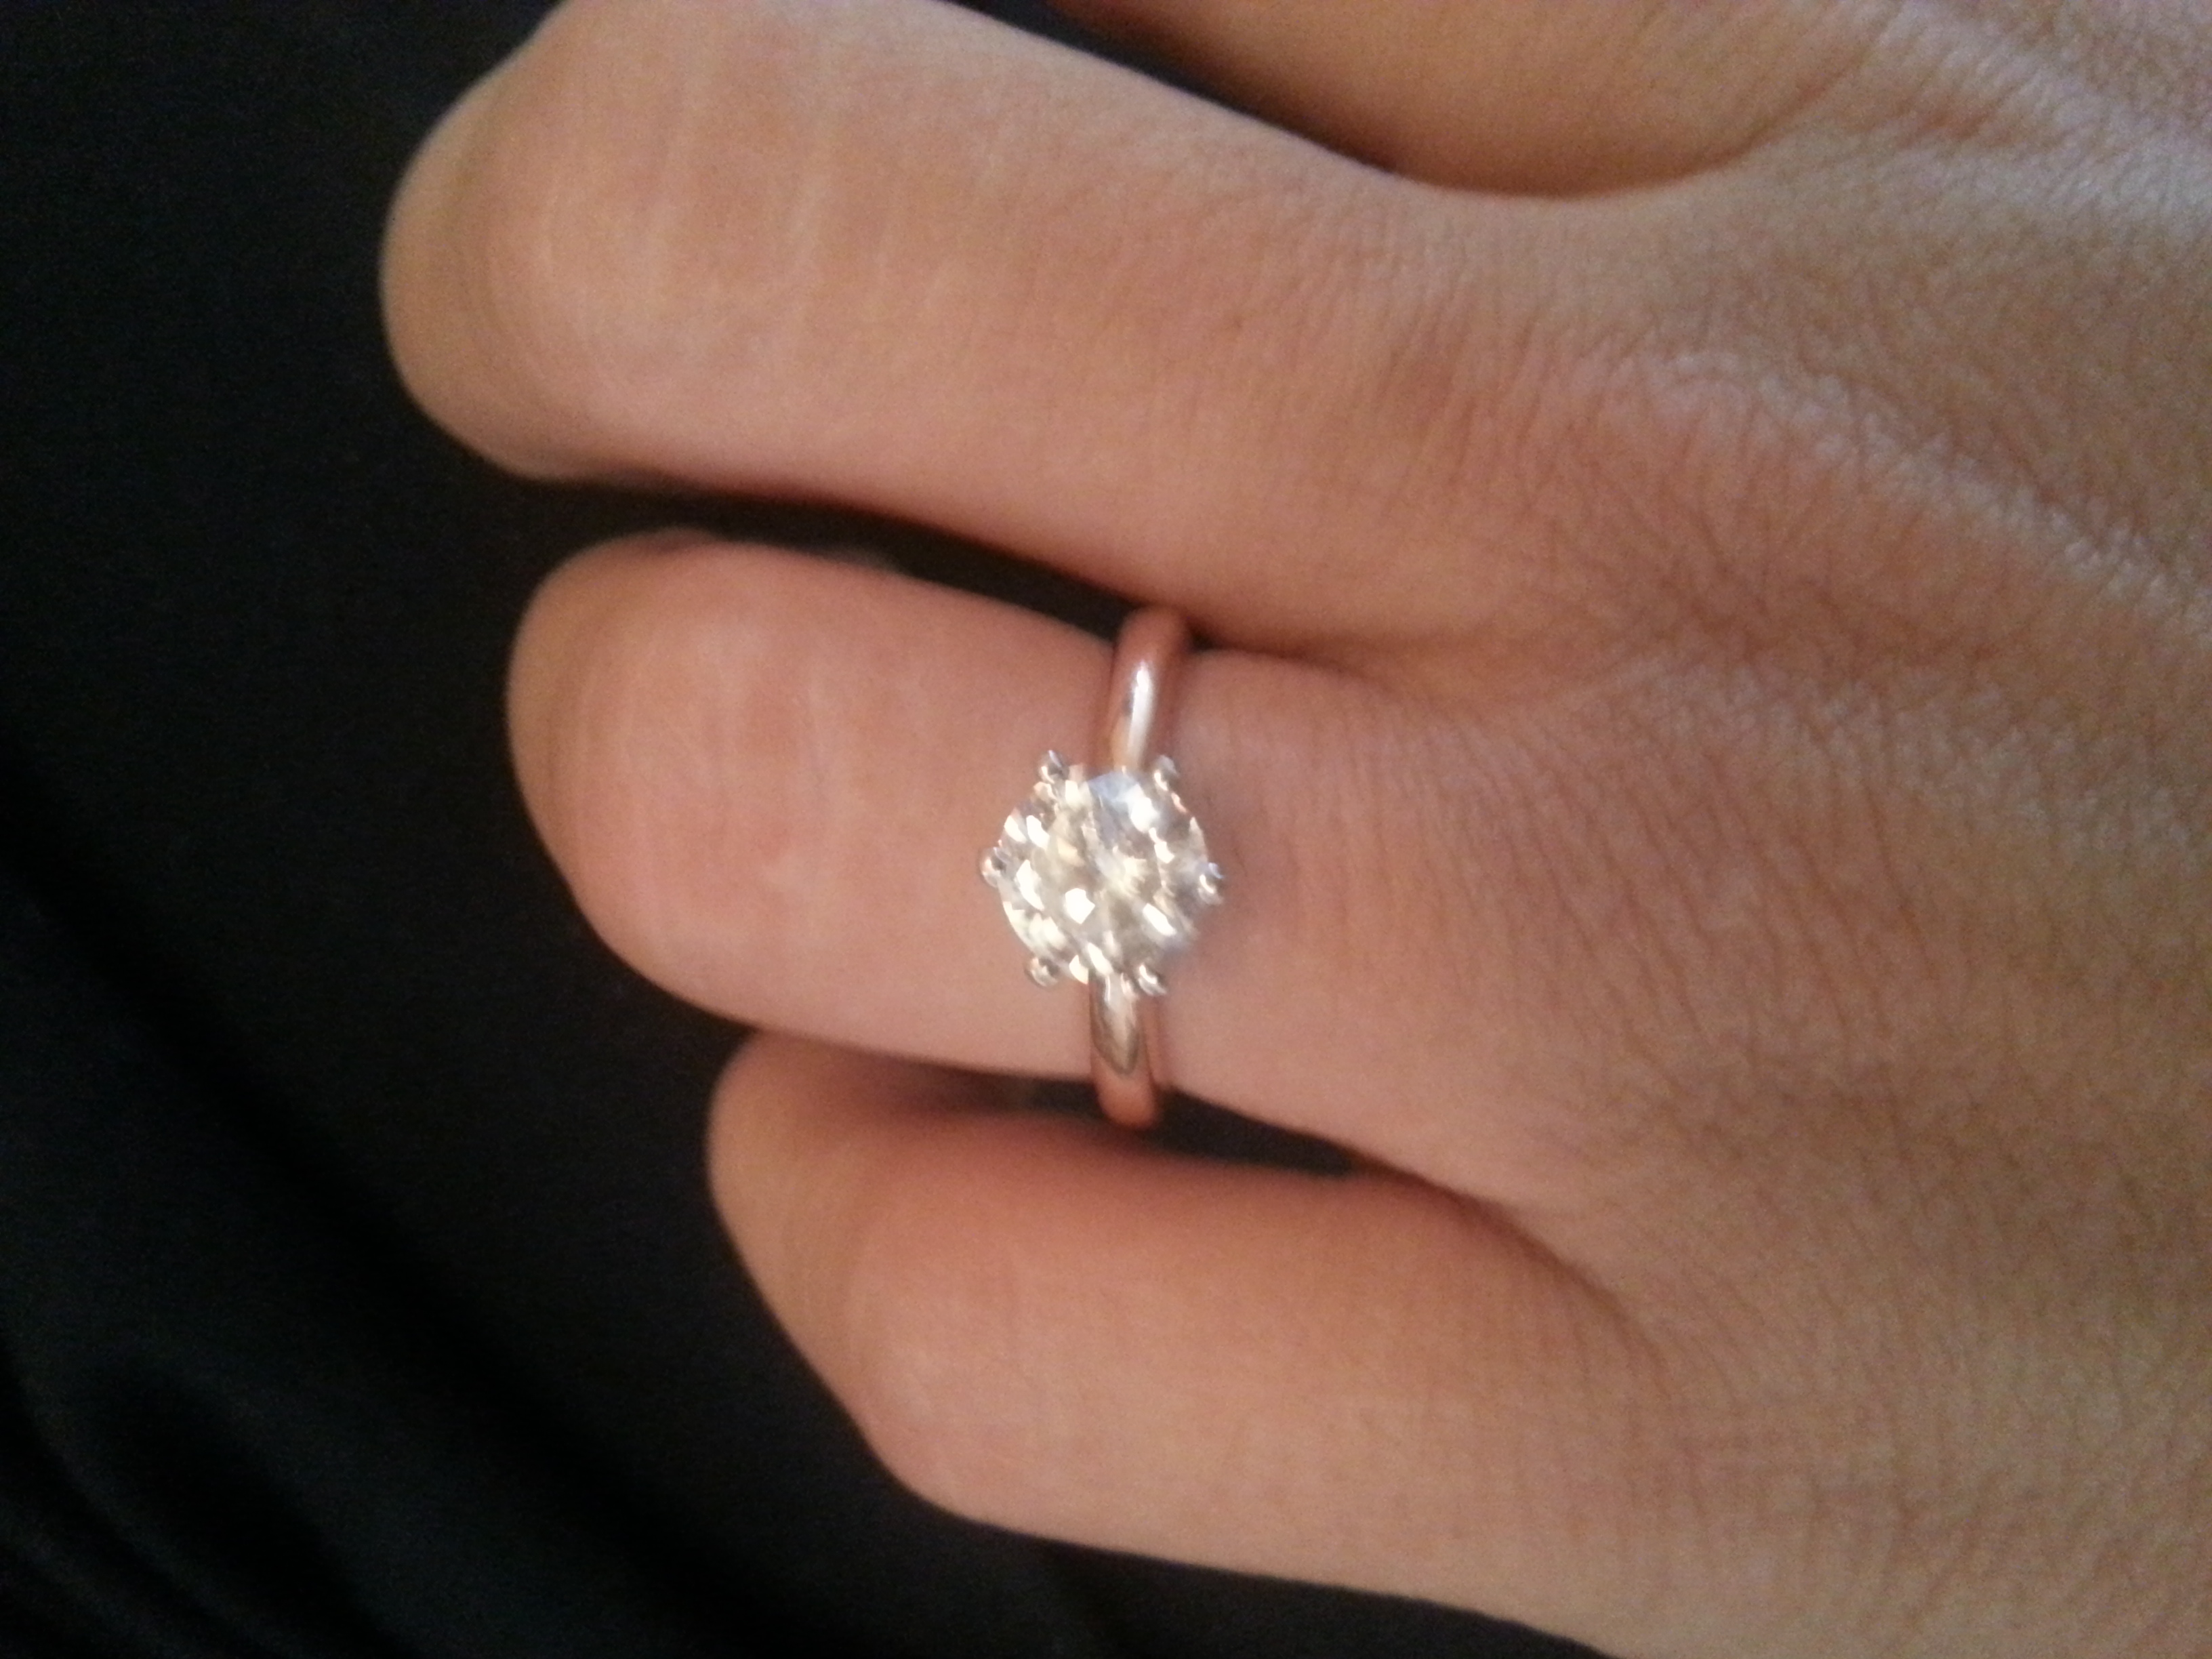 rose gold engagement ring or wedding band rose gold wedding rings This is my old engagement ring its a 14k rose gold solitaire with white gold prongs